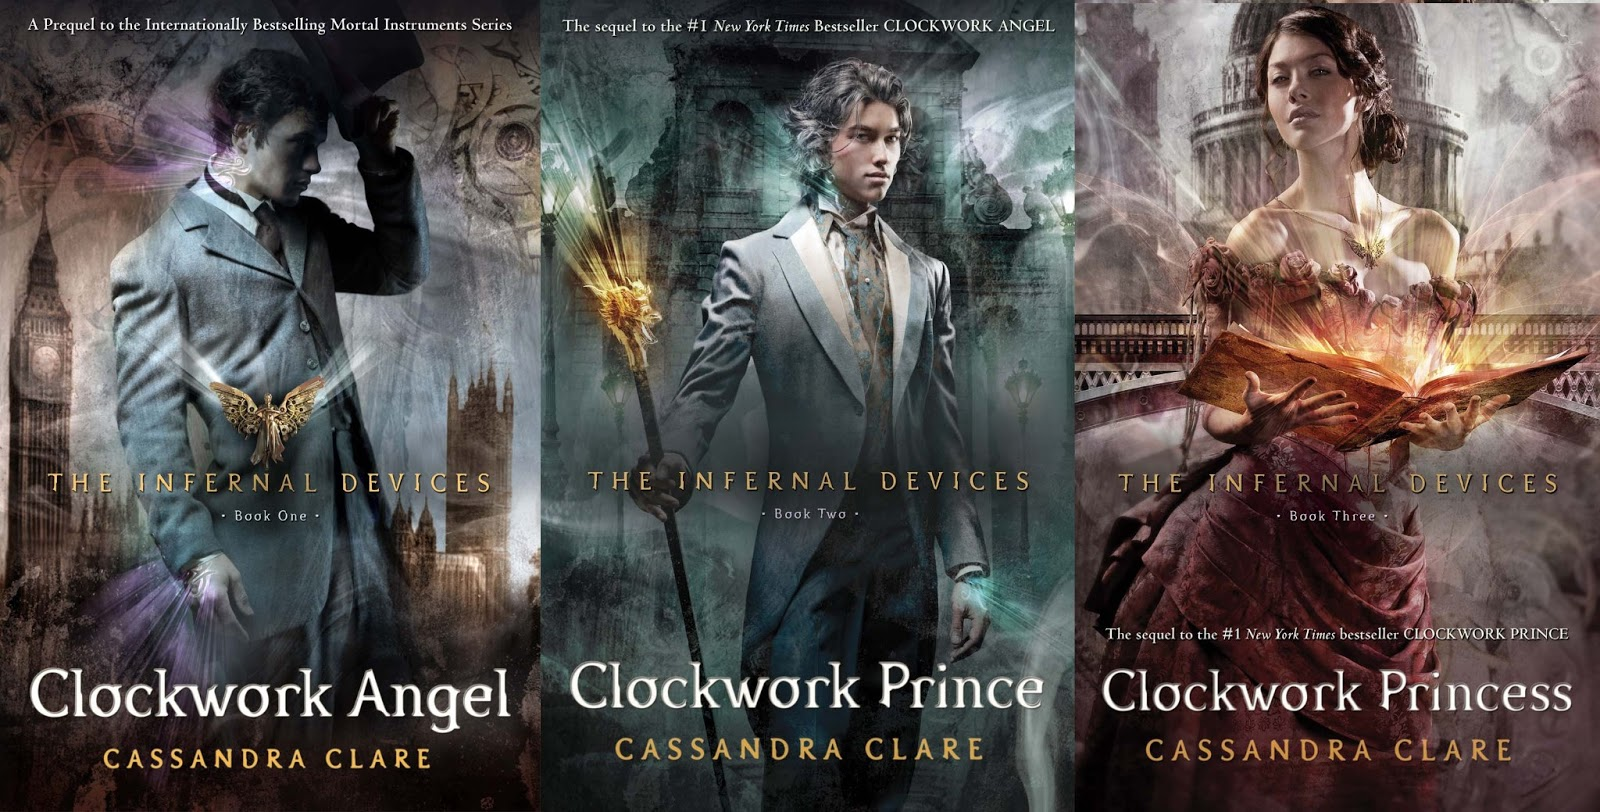 Infernal devices - bibliophile review